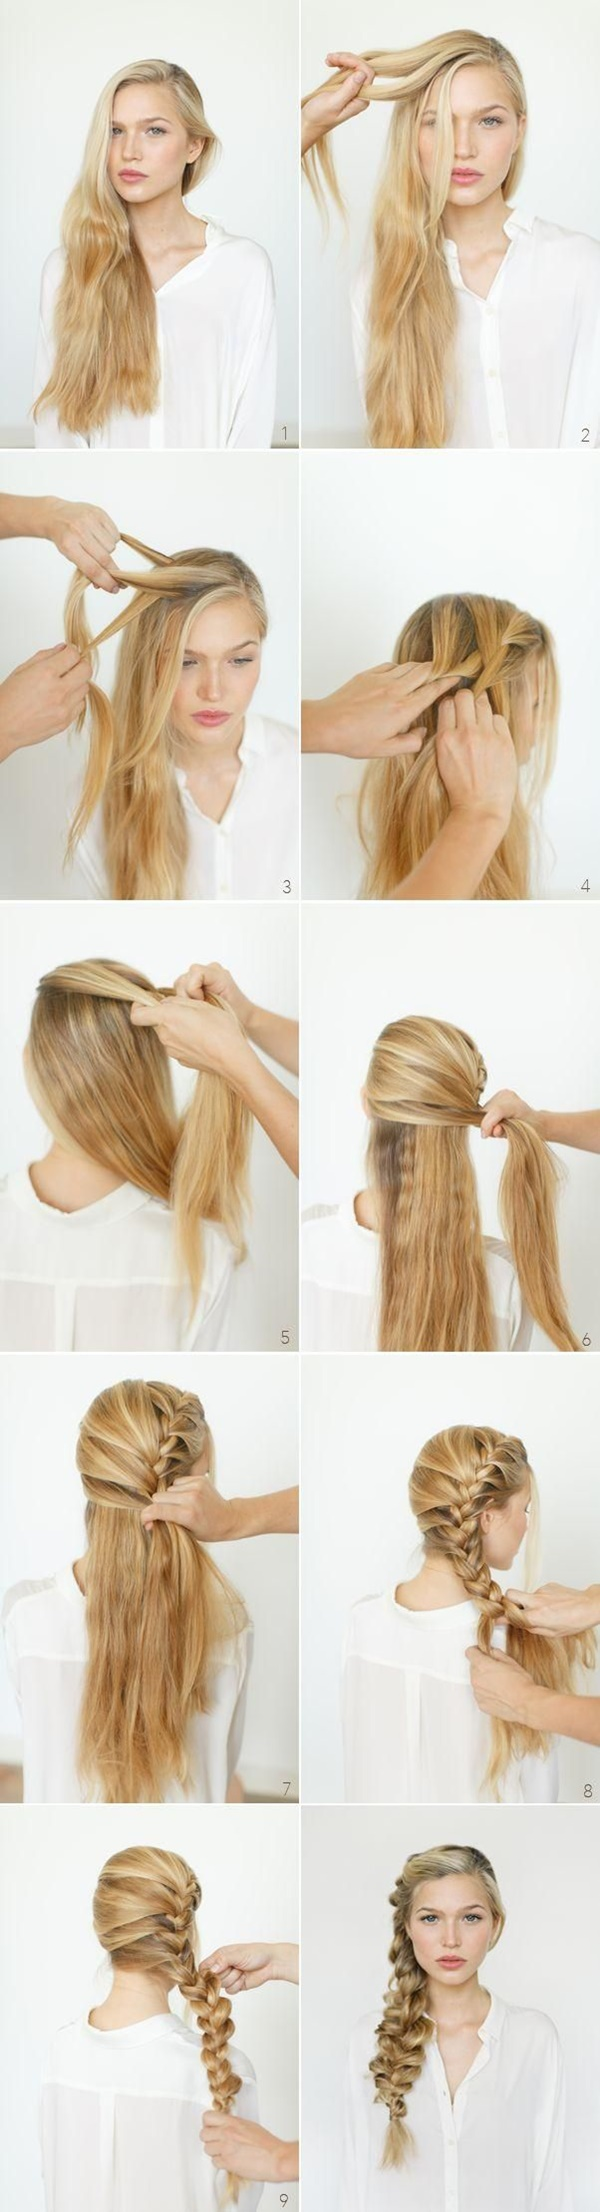 11 Romantic Braided Hairstyles for Long Hair and Medium Hair